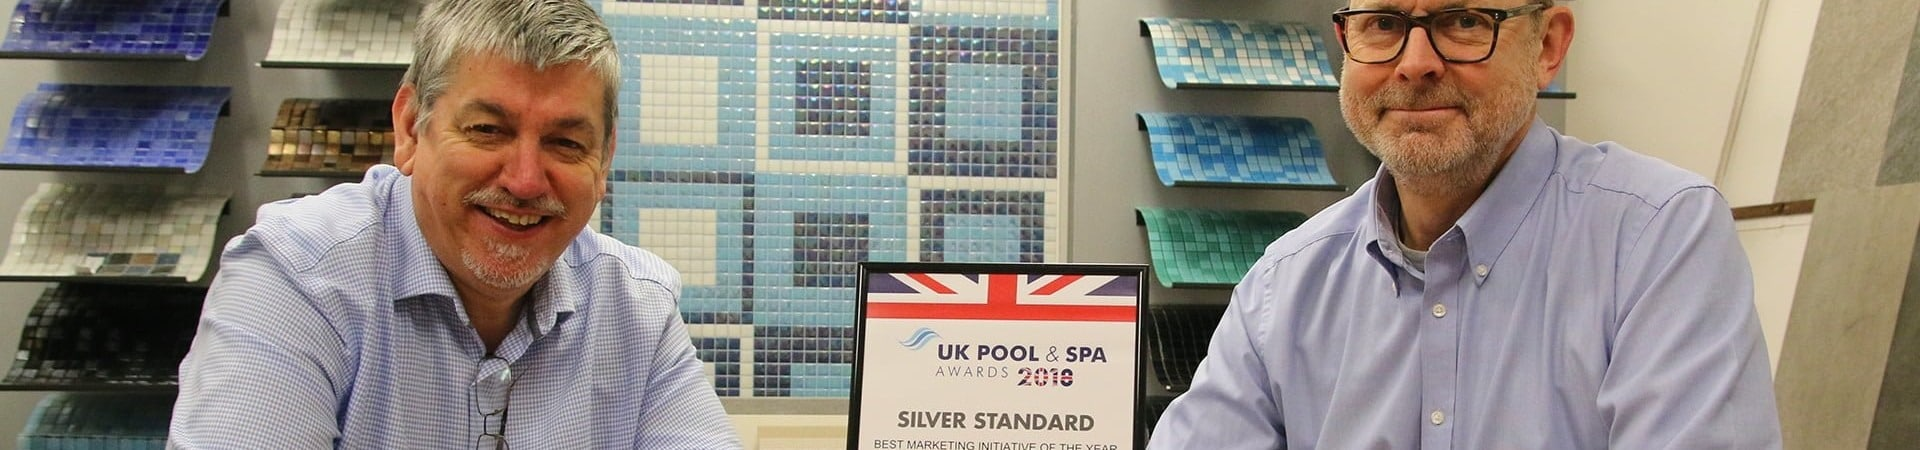 Client wins best marketing initiative at the Pool and Spa Awards